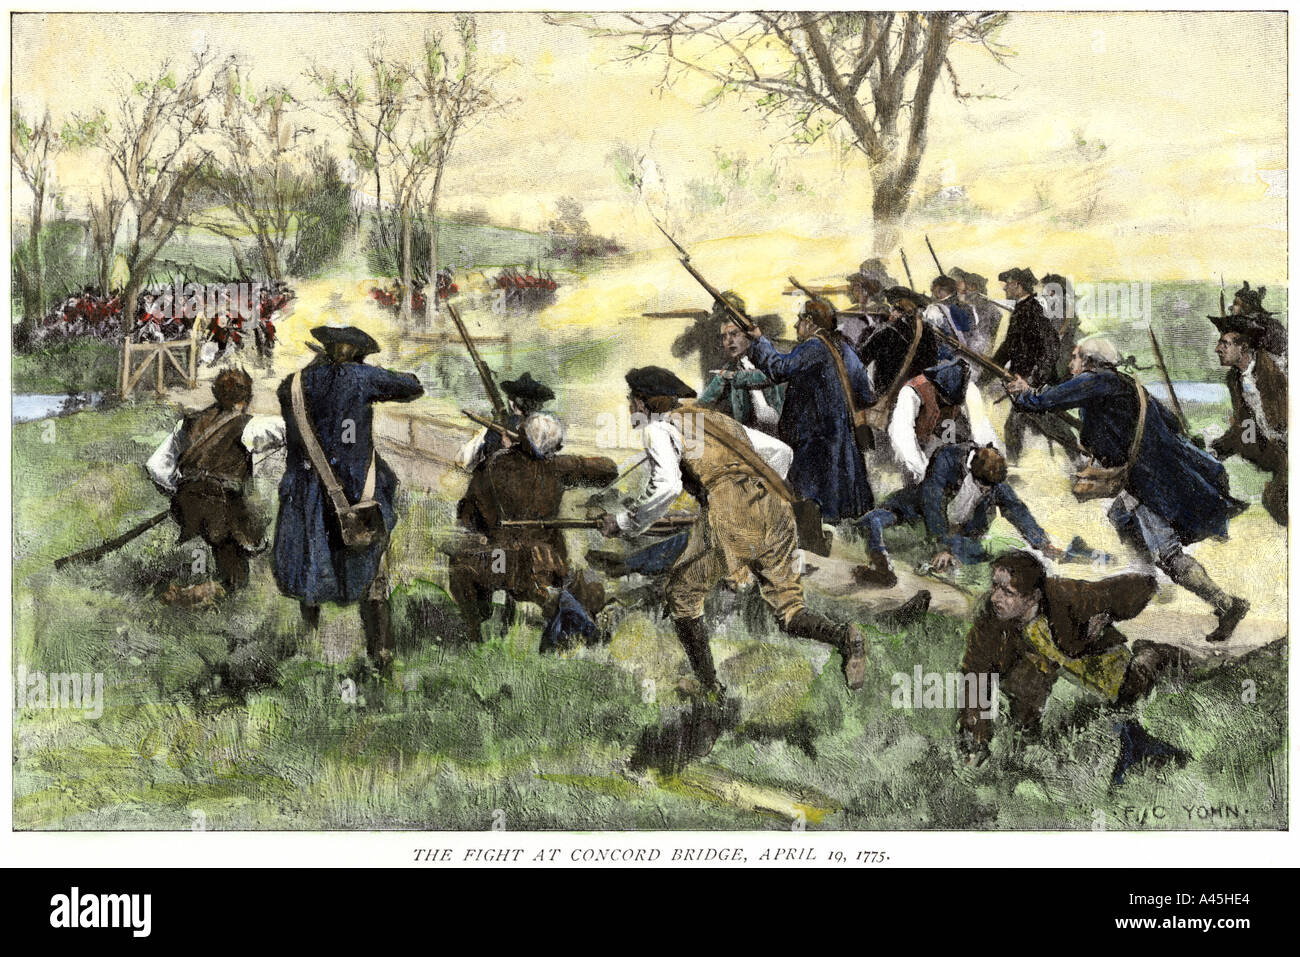 Minutemen fight to hold off the British army at Concord Bridge April 10 1775. Hand-colored woodcut - Stock Image